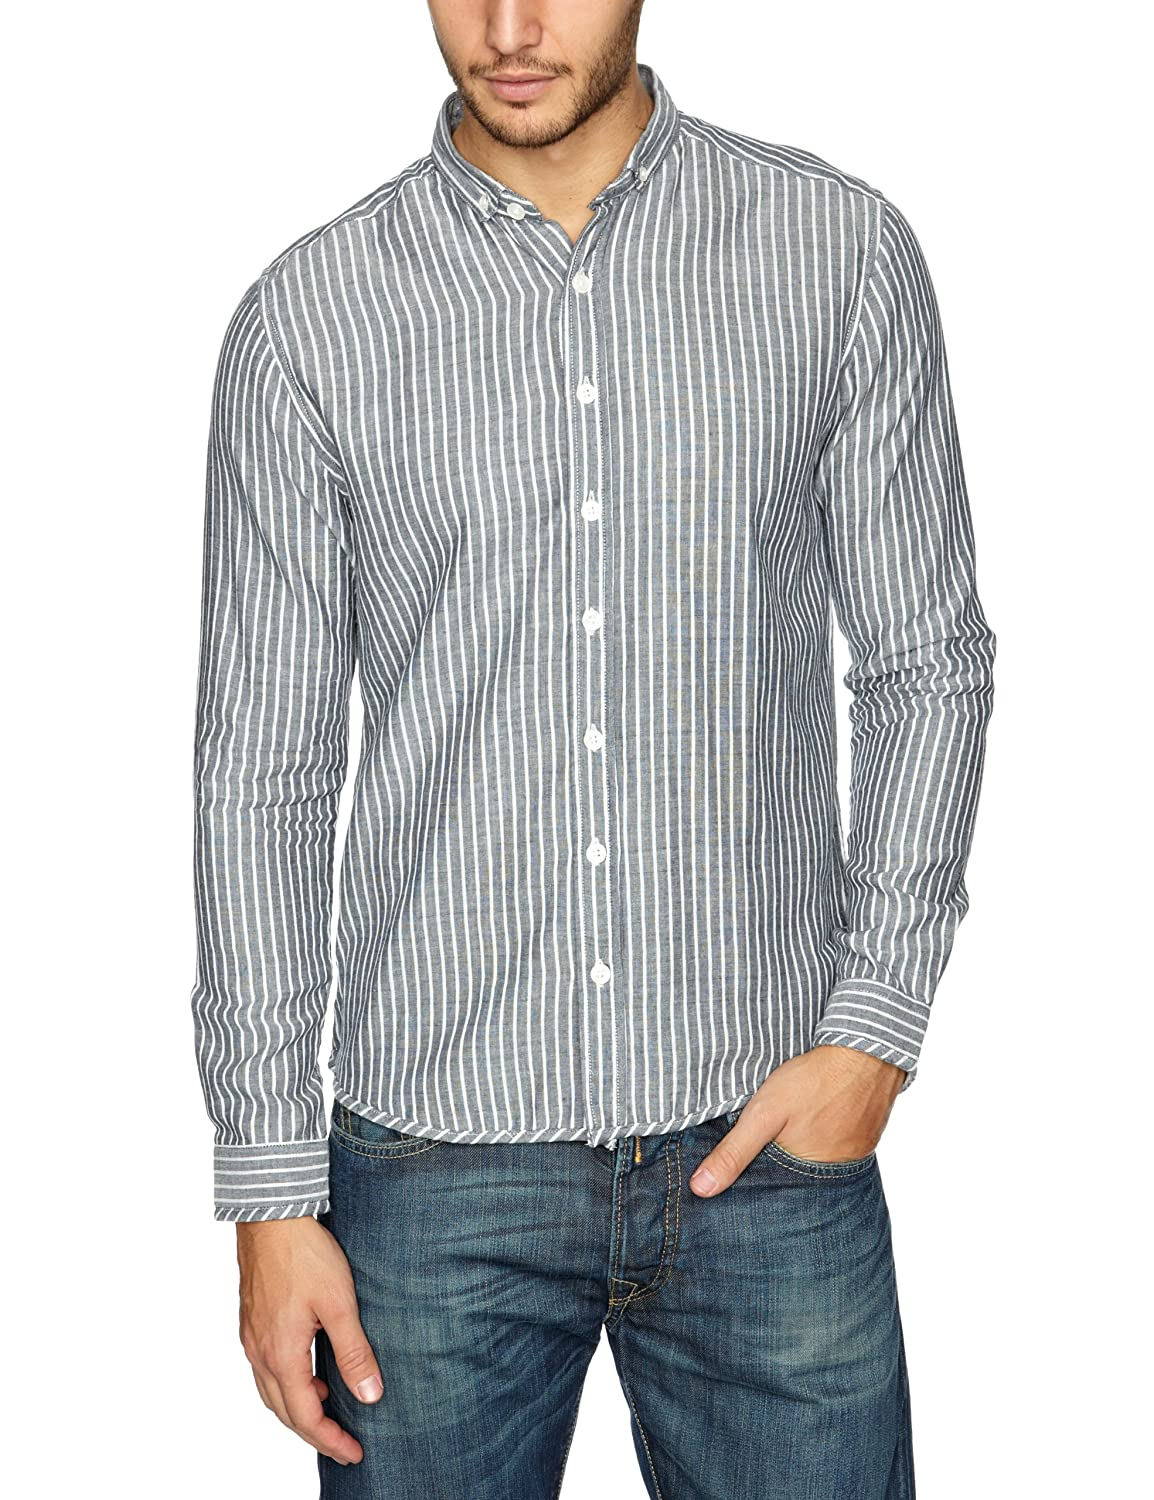 NUNC Herren Shirt , Button-down